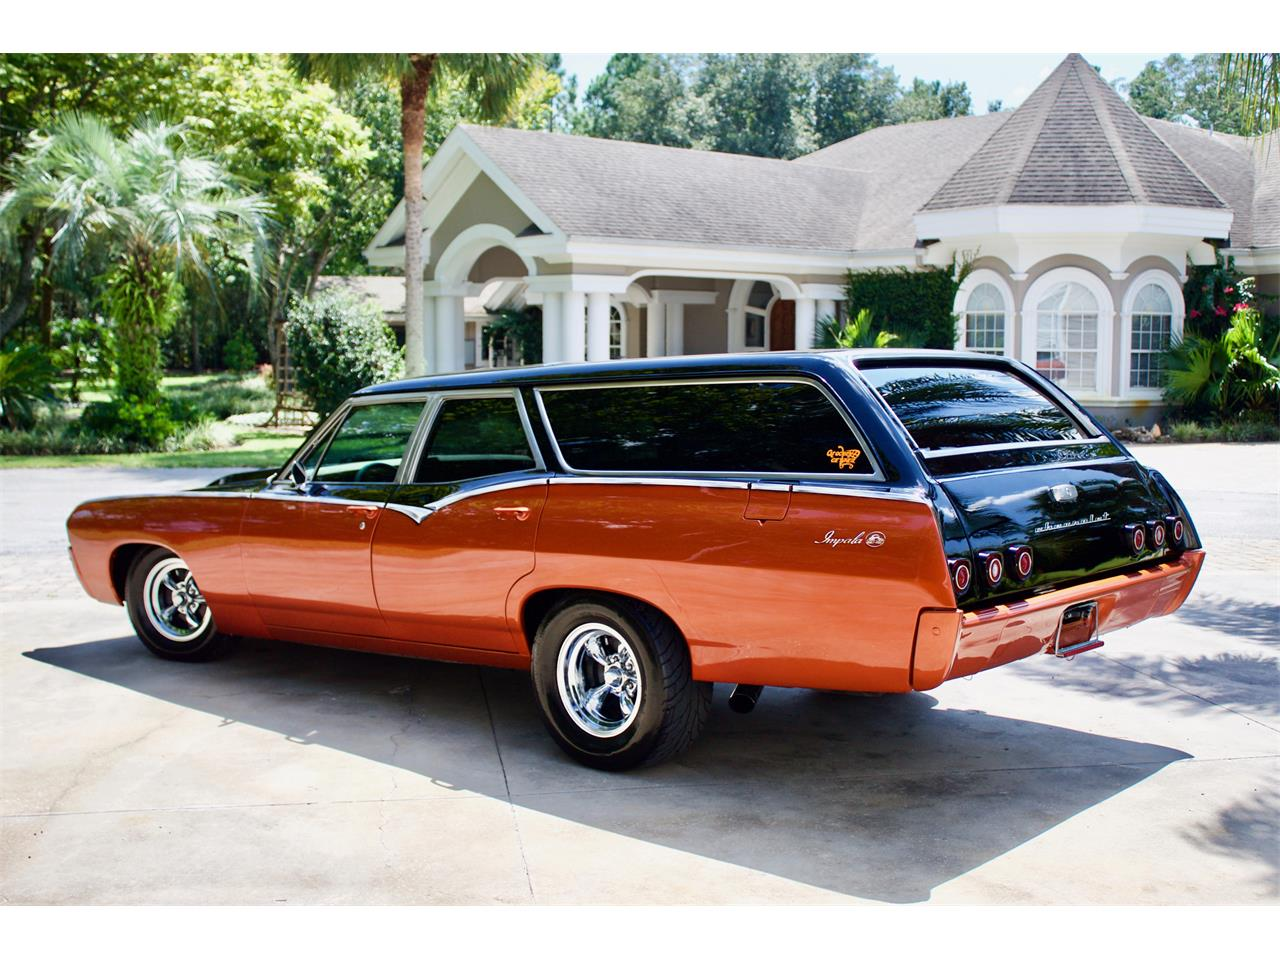 Large Picture of 1968 Chevrolet Impala SS427 located in Florida - $44,950.00 - QYQC